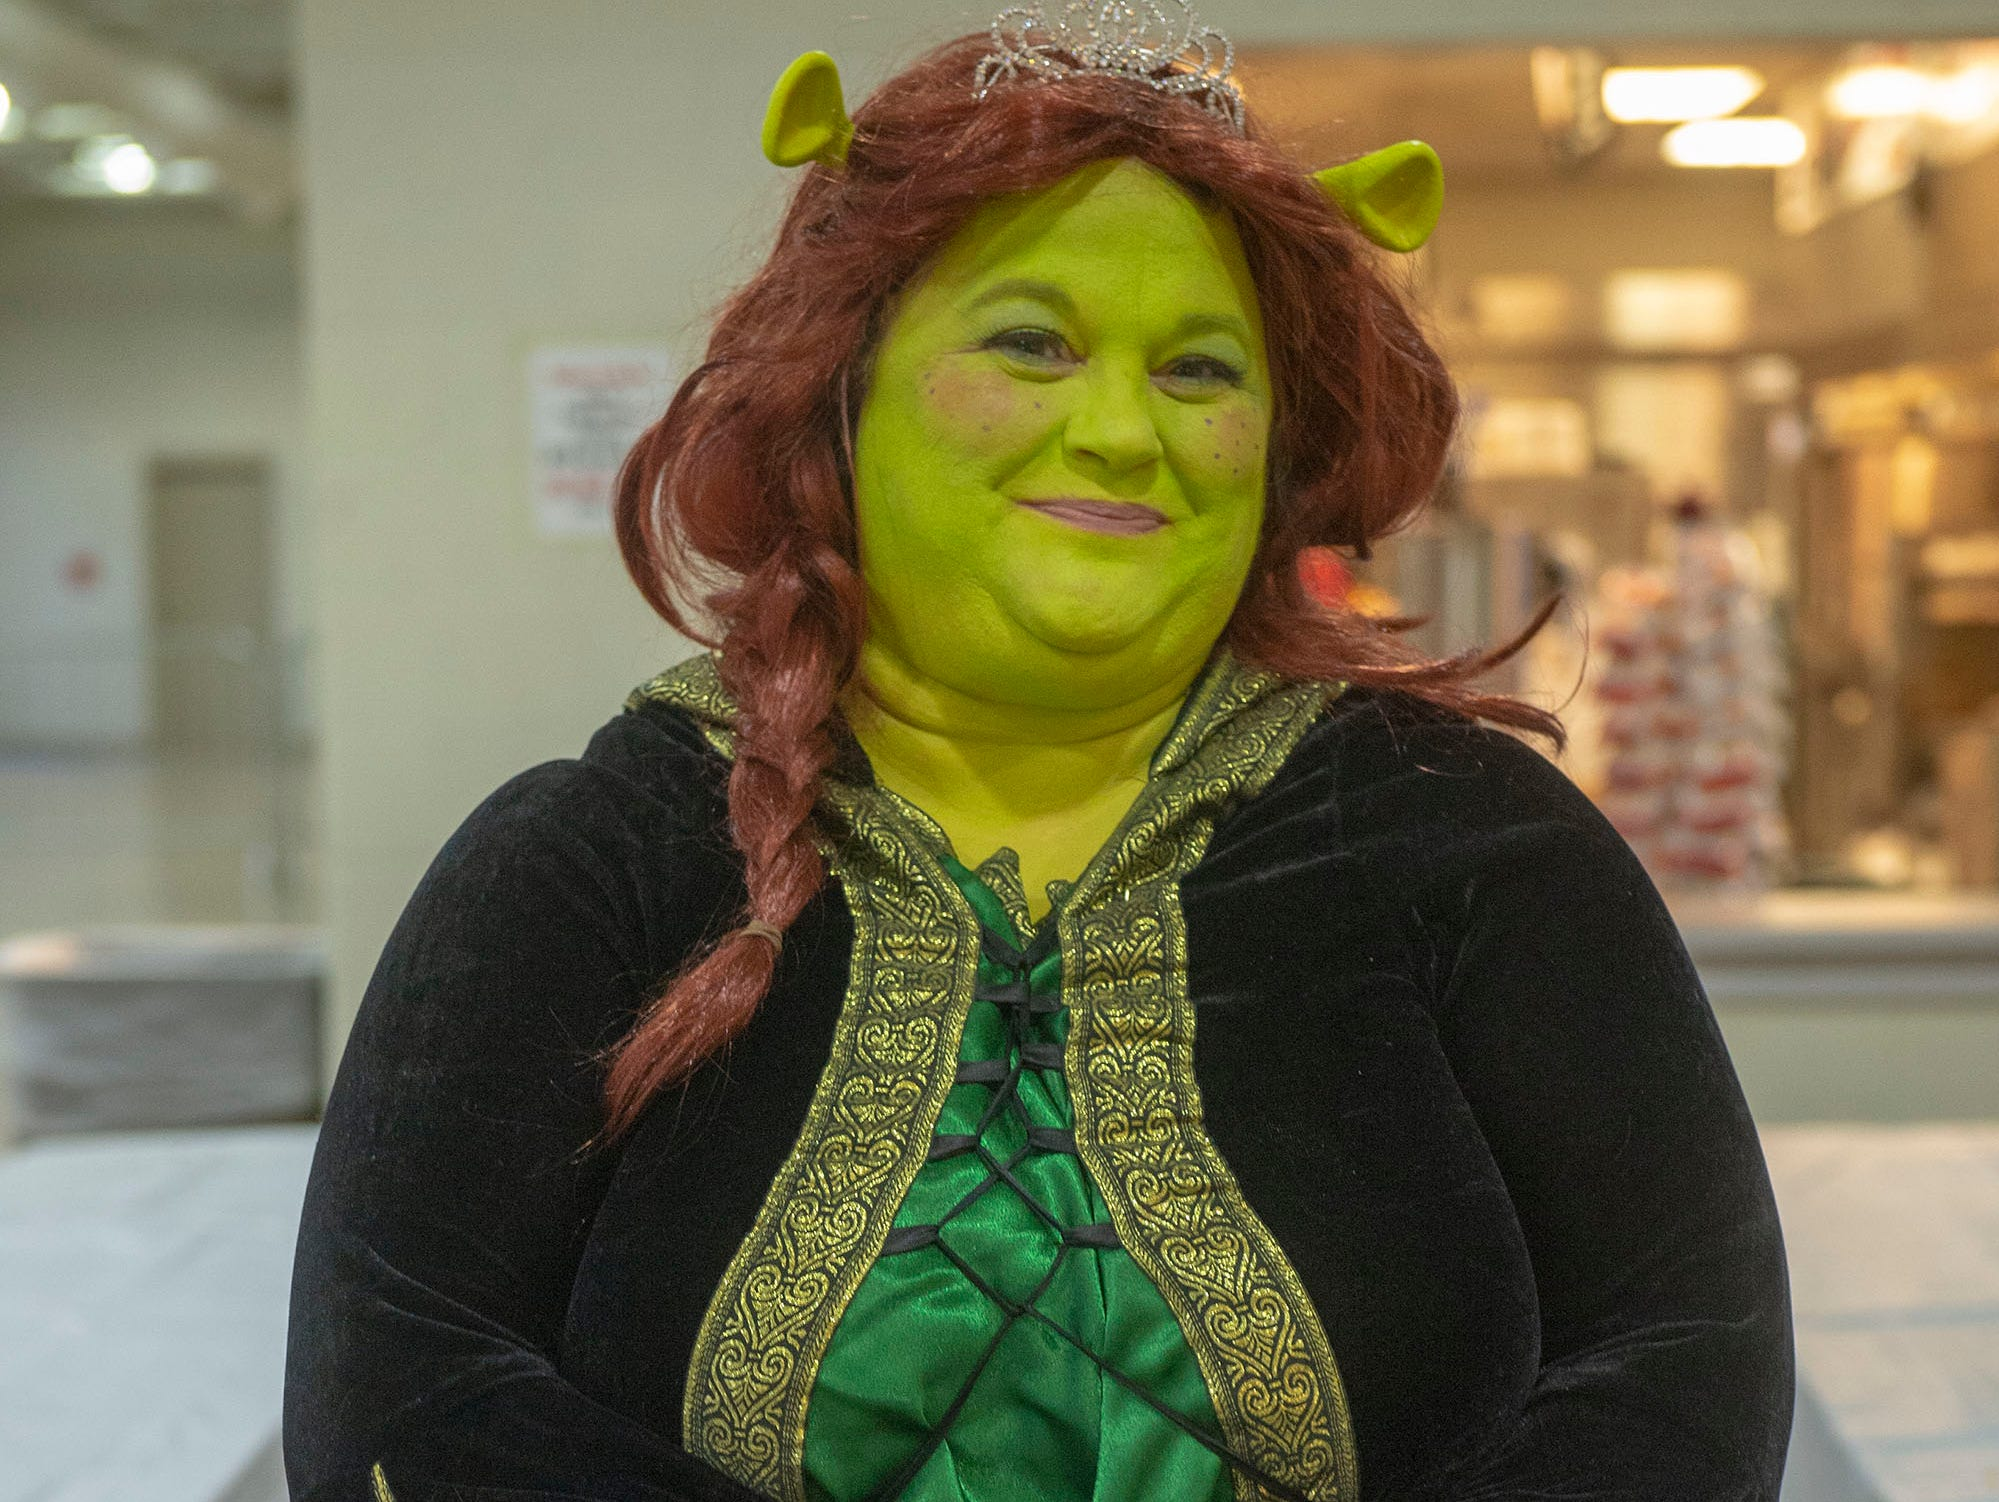 """Elisabeth Bolyard says it takes her about 30-45 minutes to get into her Fiona makeup from the movie """"Shrek."""" The York resident goes to about three comic cons a year. She was Fiona Saturday at the White Rose Comic Con, which runs through Sunday, March 24, 2019 at Utz Arena of the York Fairgrounds."""